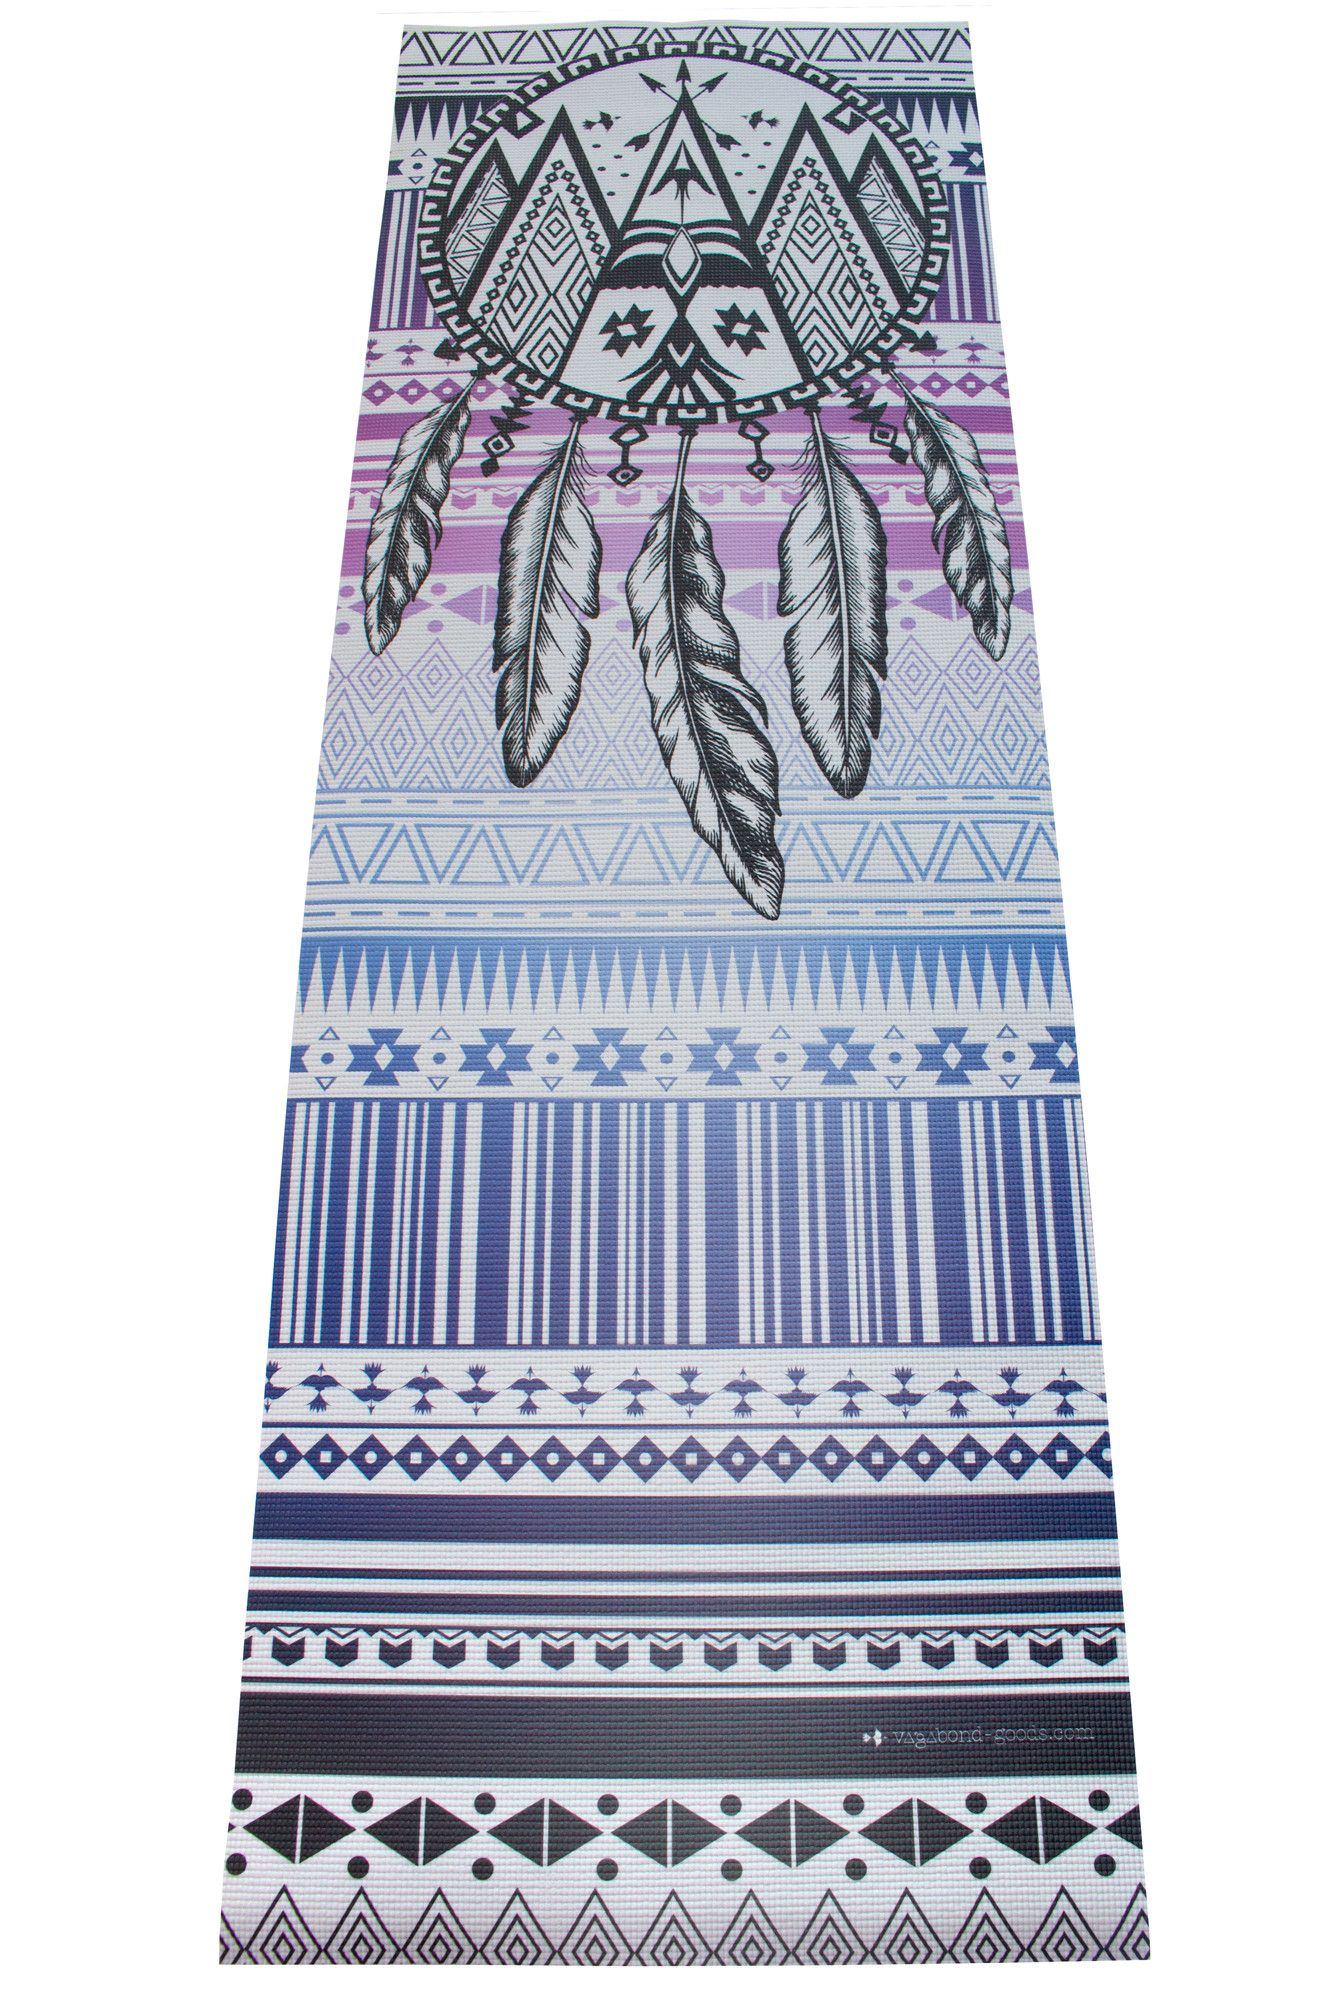 by mats tribal printed mat weaver on pin dream vagabondyoga yoga etsy